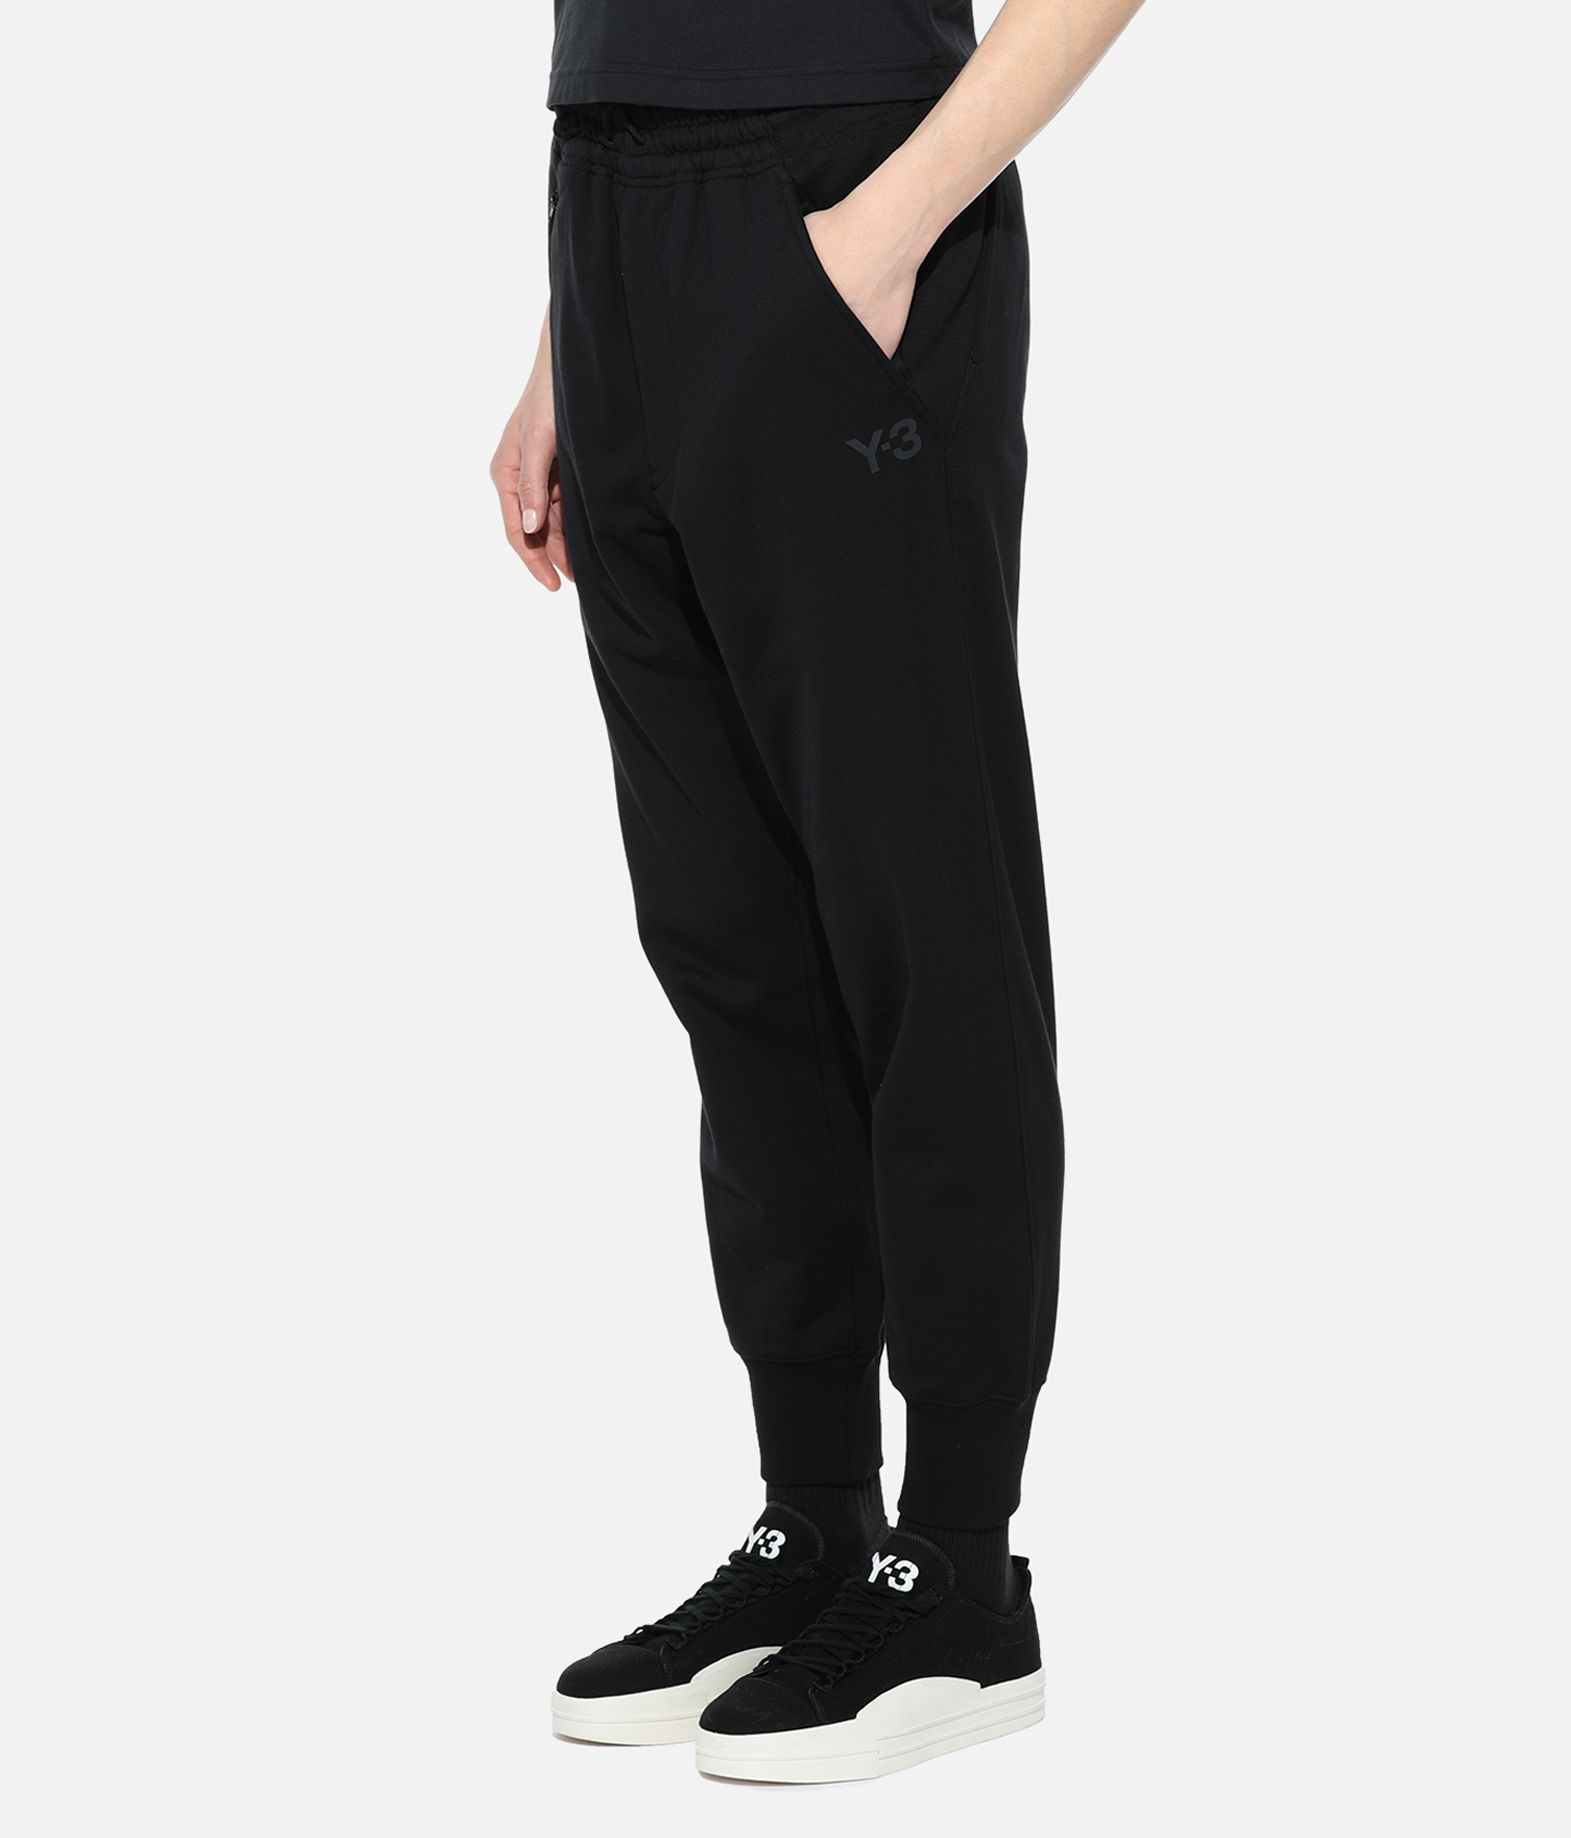 Y-3 Y-3 Classic Cuffed Pants Casual pants Woman e